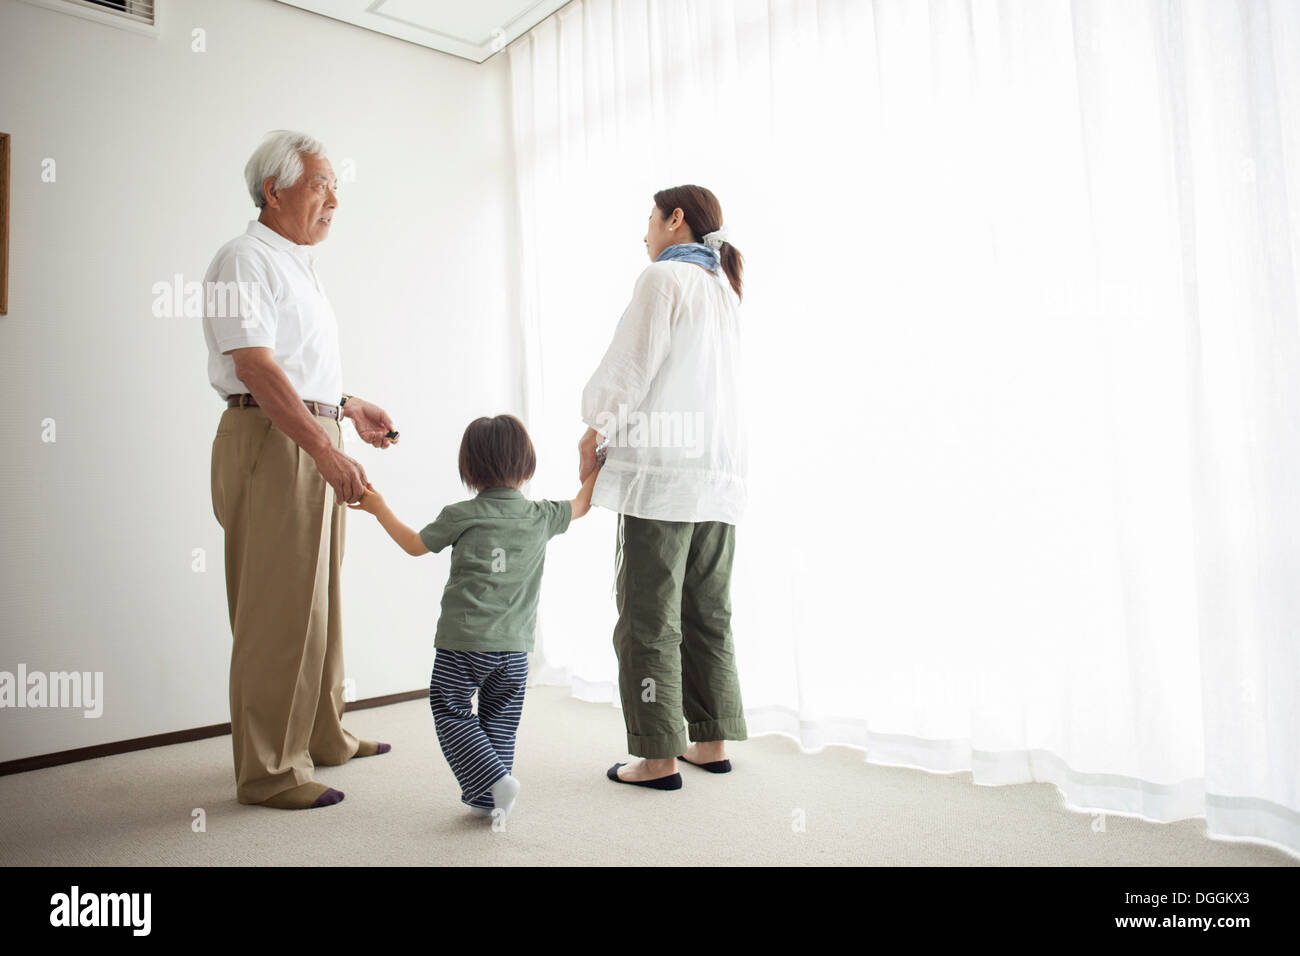 Three generation family standing by window holding hands - Stock Image